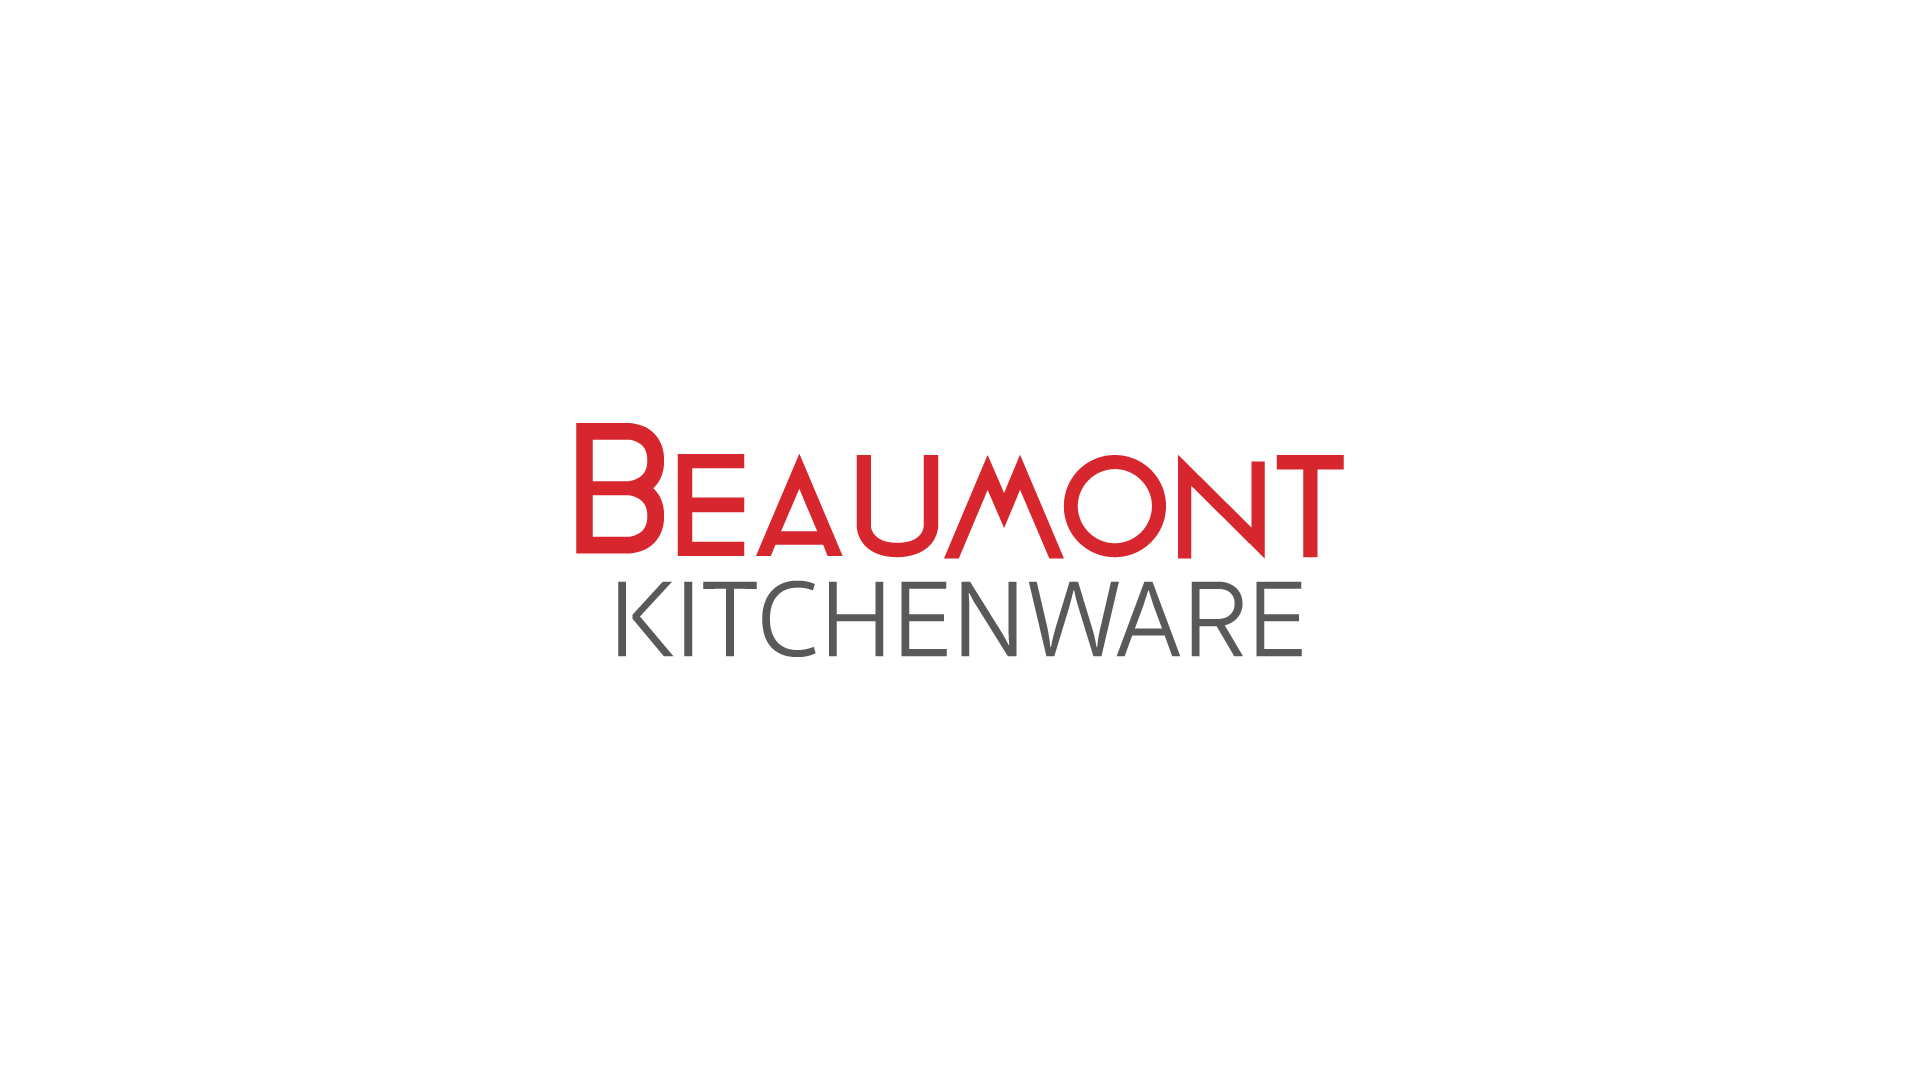 Beaumont_Kitchenware